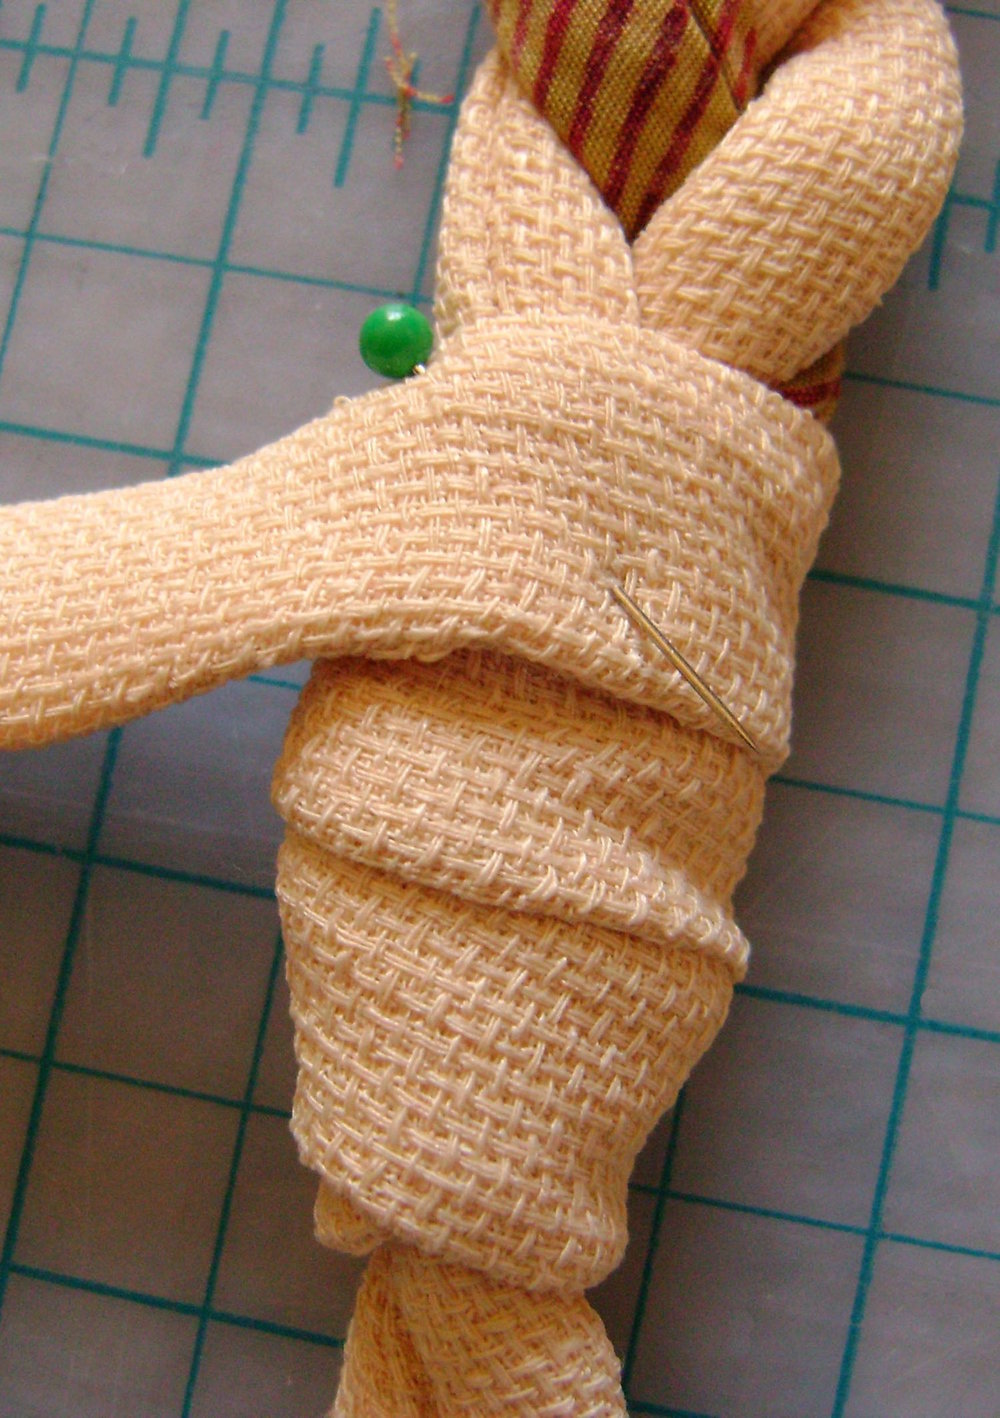 "step 4 - Hide the connection and raw edges by sewing a 3/4"" wide by 6"" long flat piece of fabric to the loop slightly below the point where it connects to the braid. Wrap around, angling upward until the raw edges are covered. Pin in place."